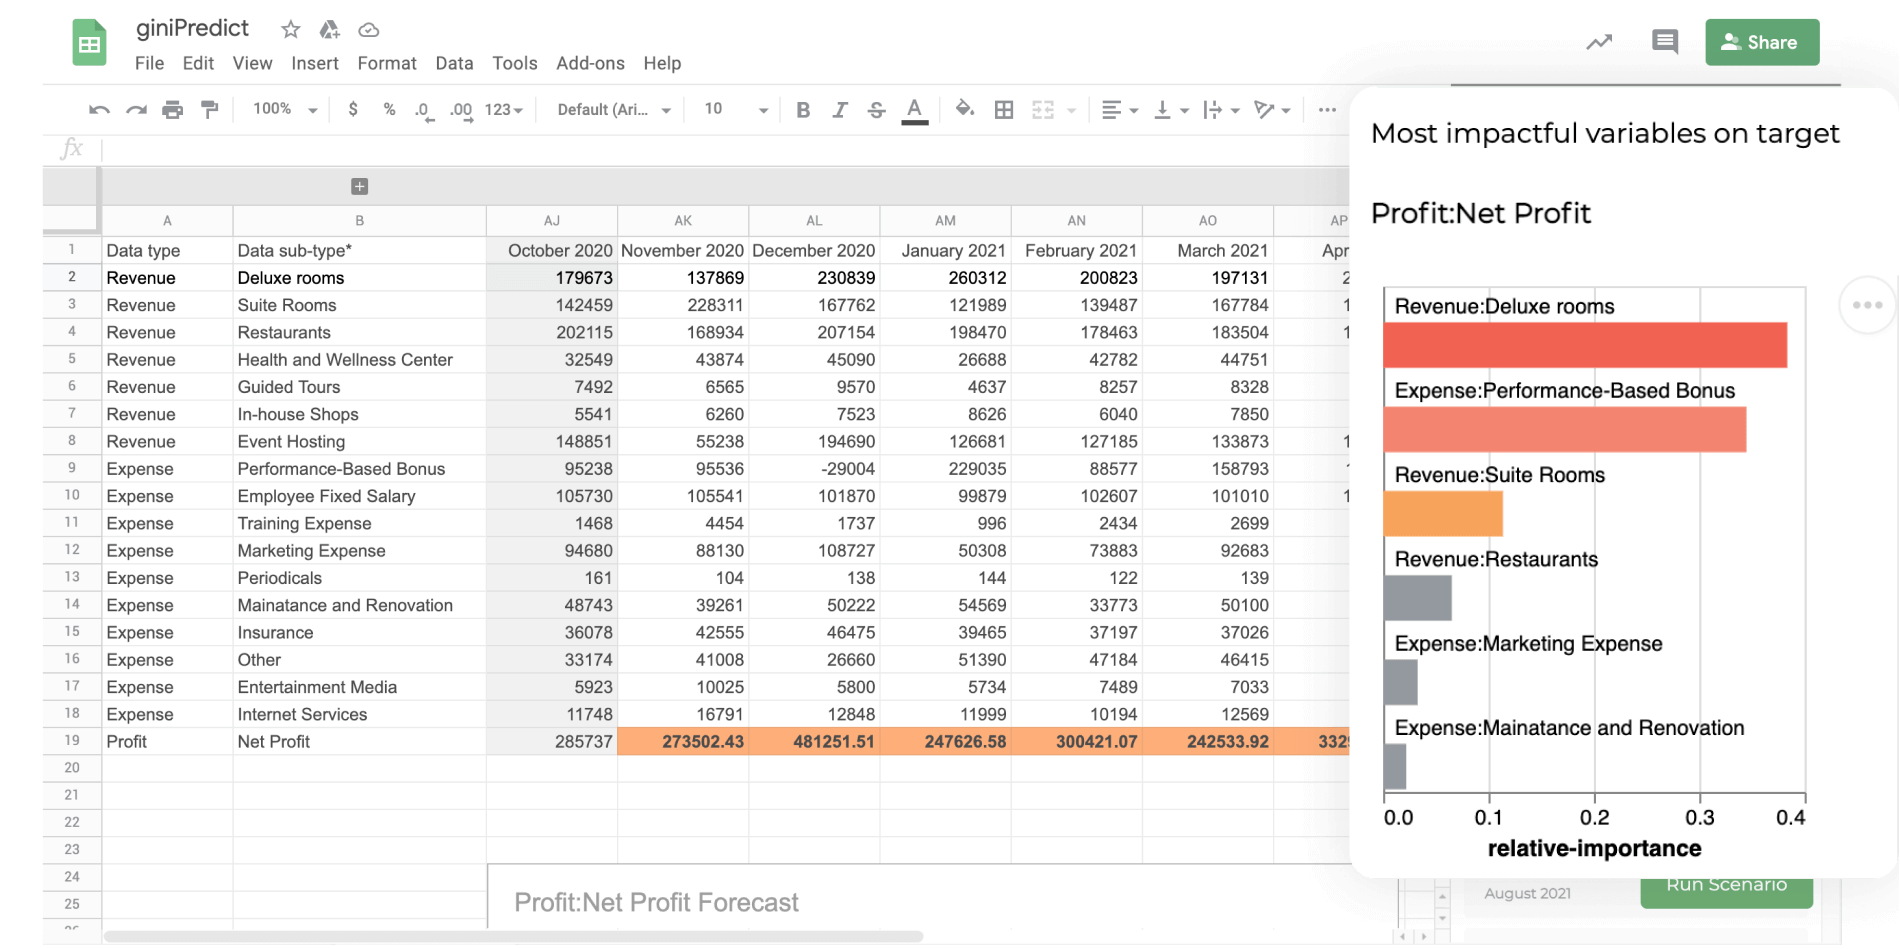 giniPredict: Most impactful variables on hotel revenue | Financial forecasting with giniPredict Google Sheet add-on